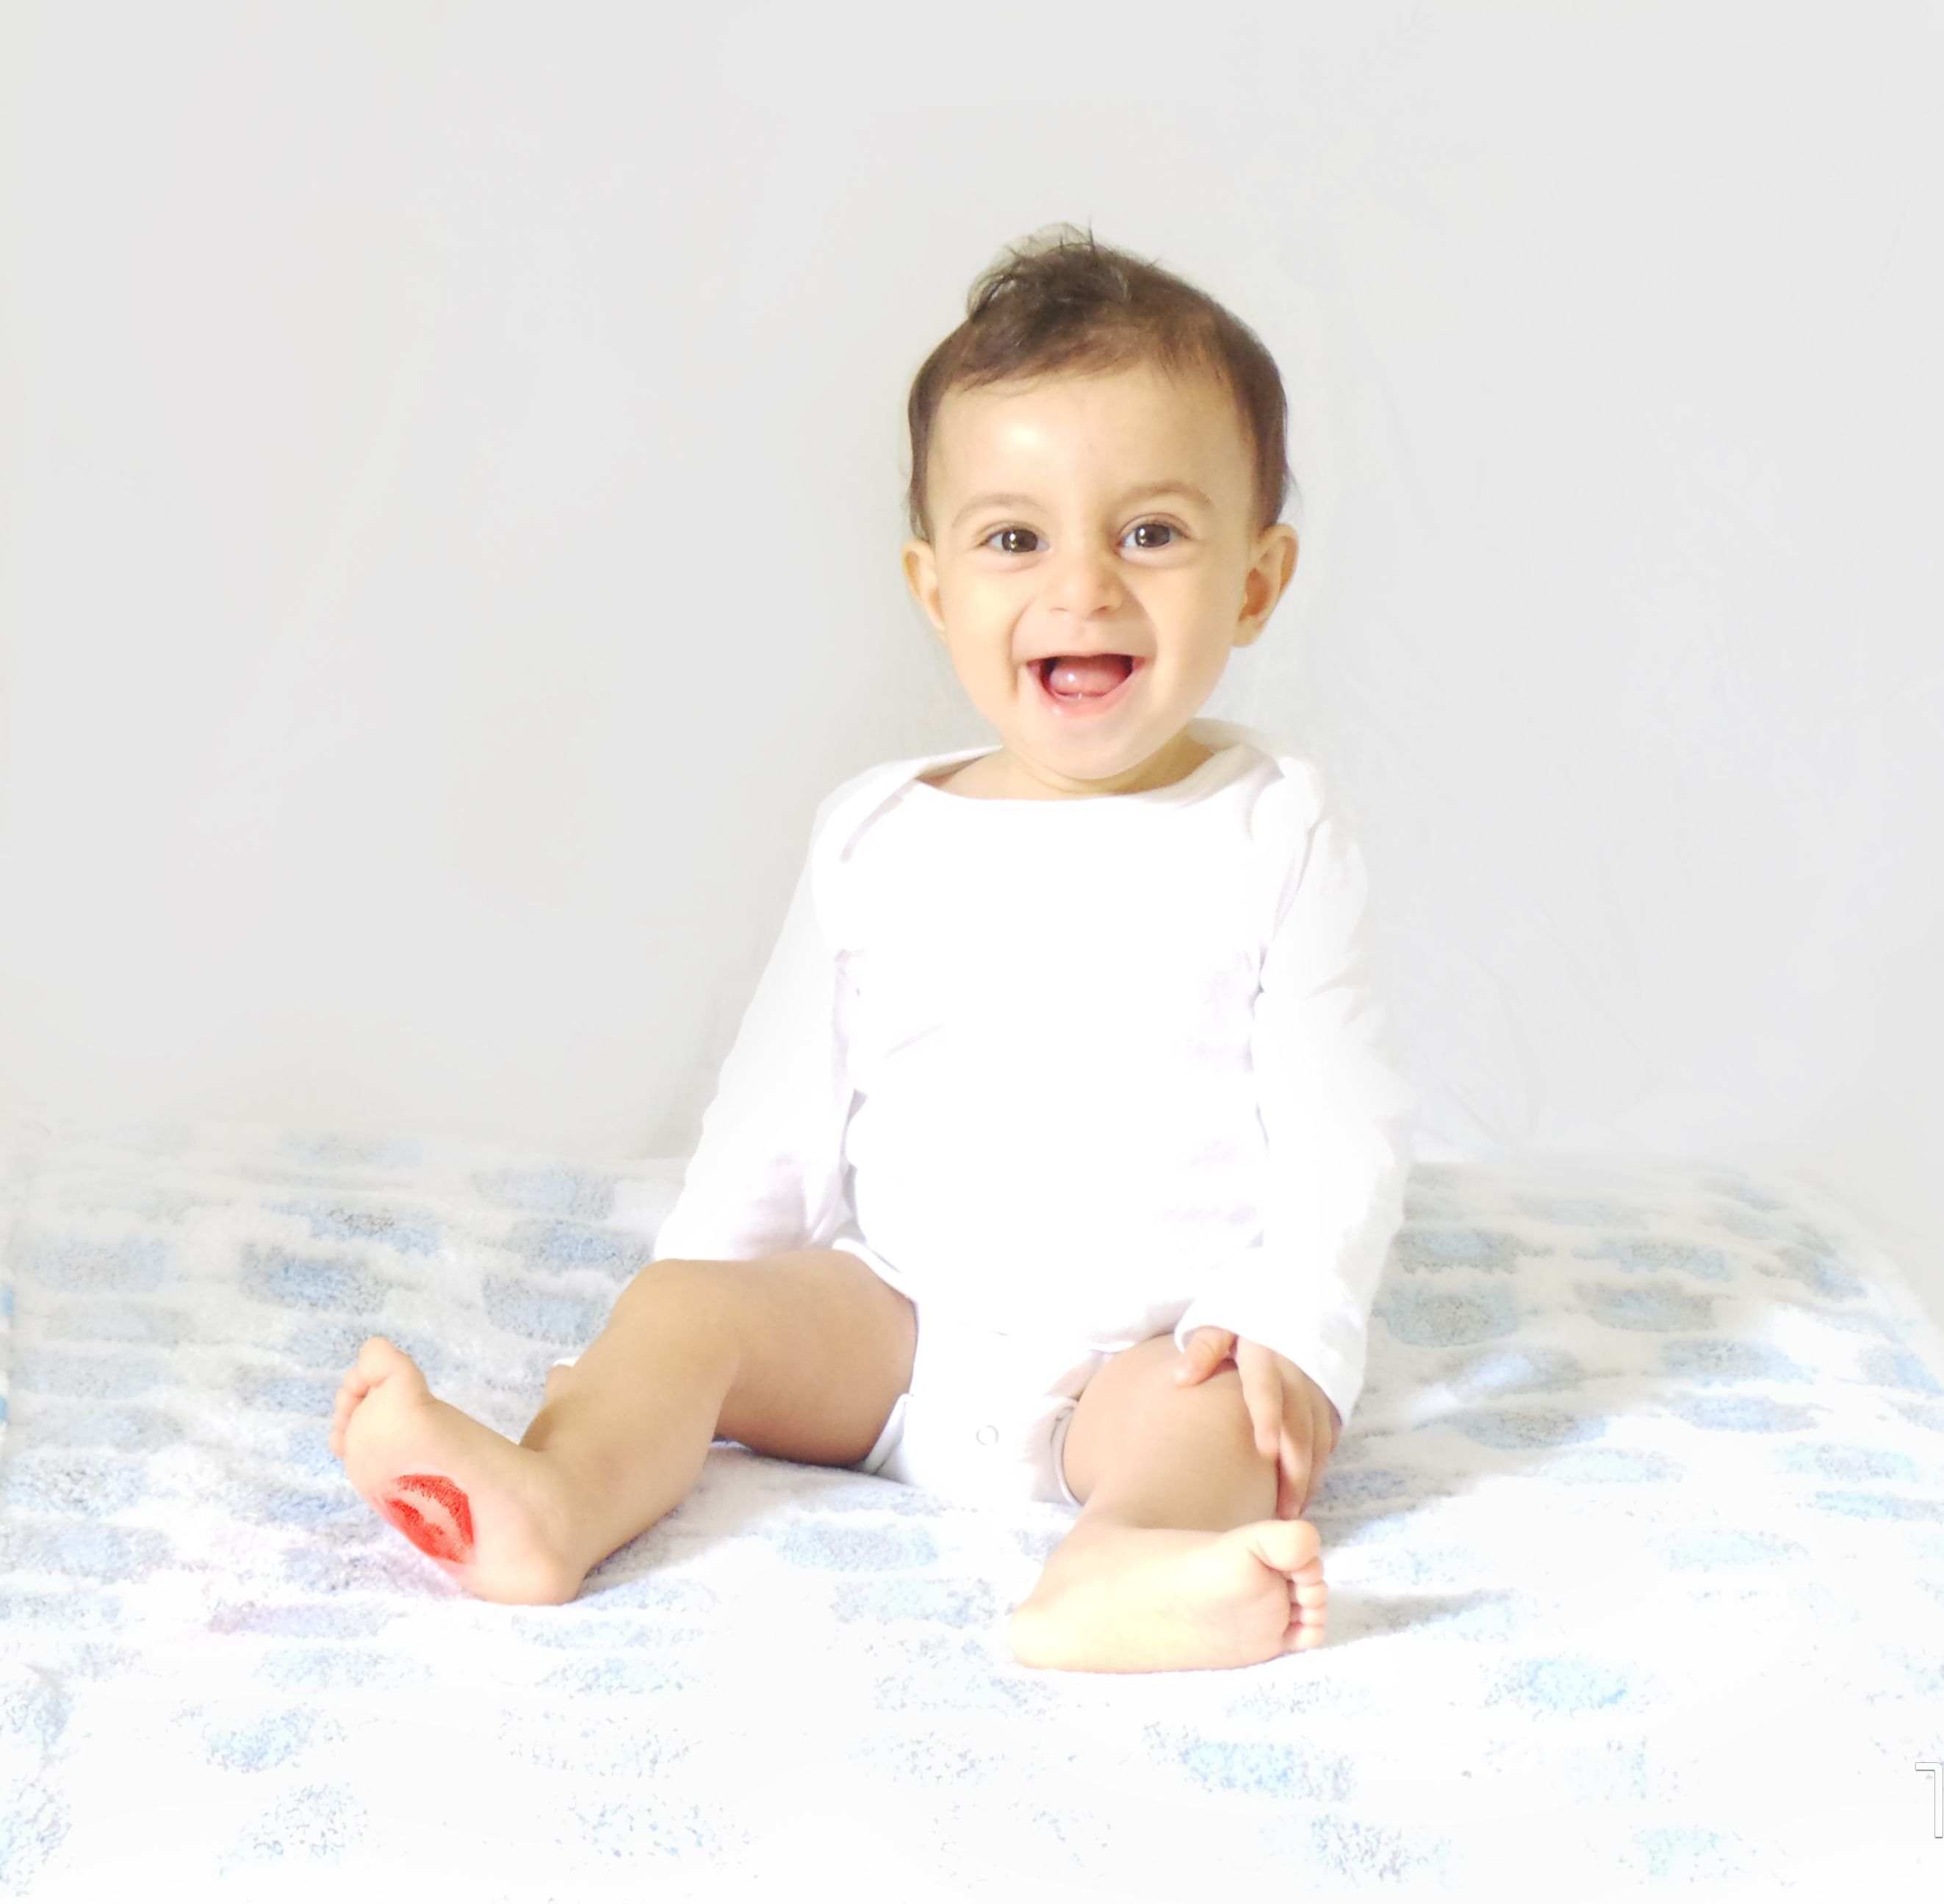 Alex baby home photo shoot | Baby book | Pinterest | Photo shoots ...